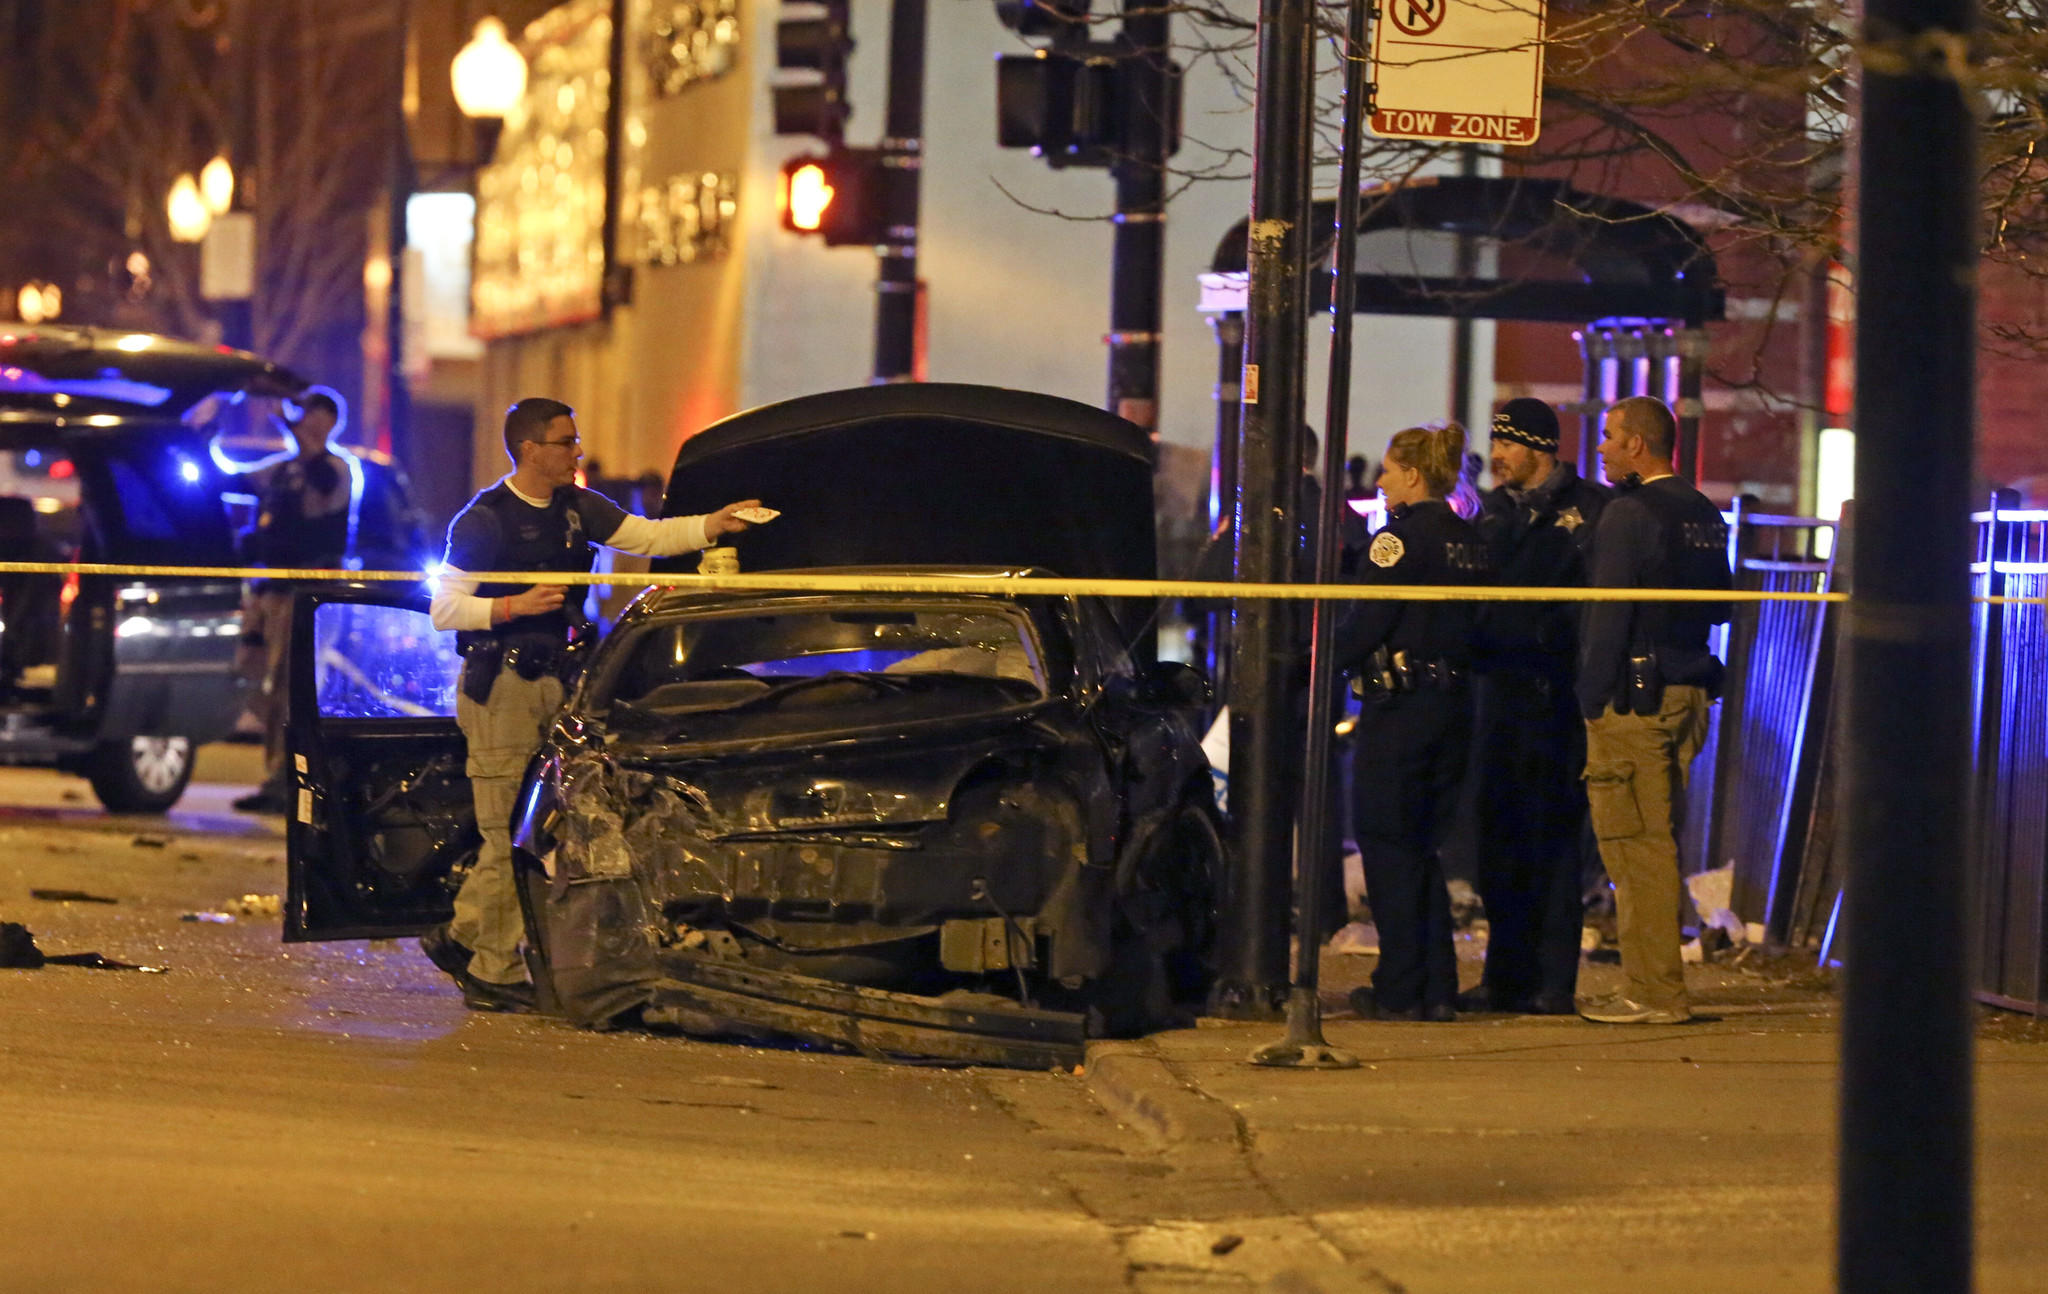 Chicago police work at the scene of a crash in the 13000 block of South Michigan Avenue where multiple people were struck by a vehicle at a bus stop.